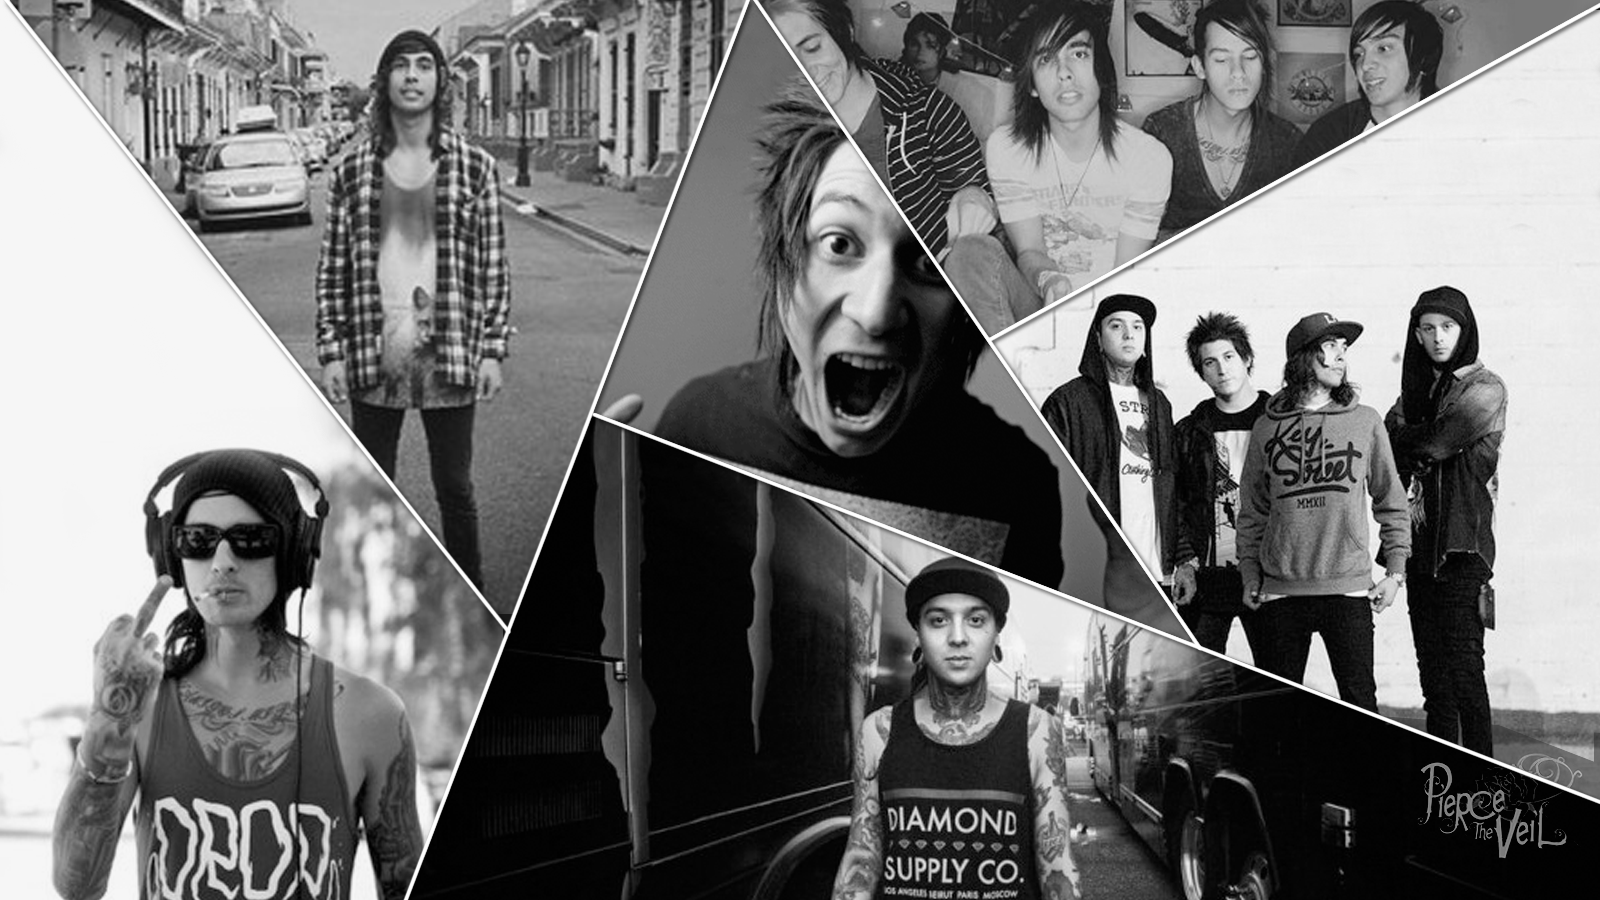 Pierce The Veil Wallpaper - WallpaperSafari